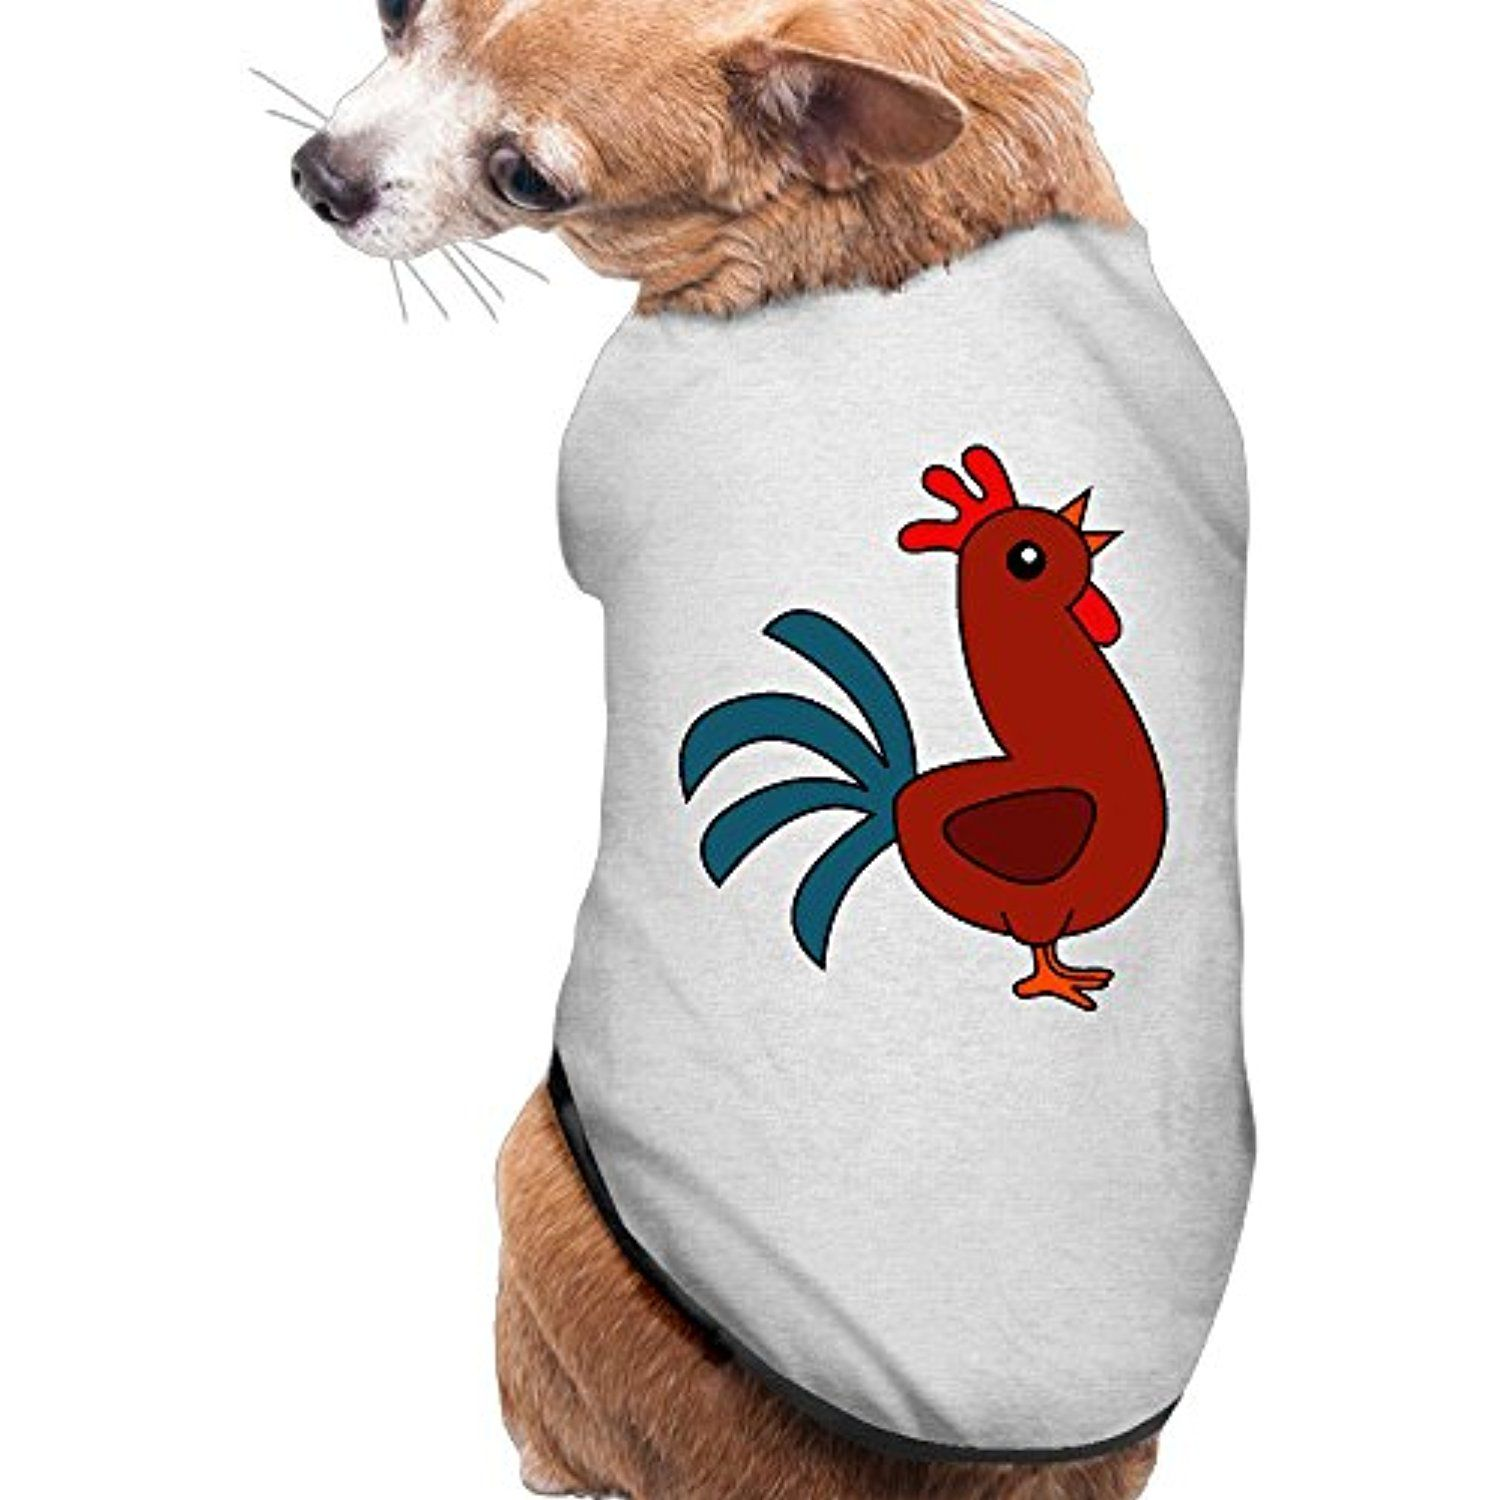 Chicken clipart tshirt.